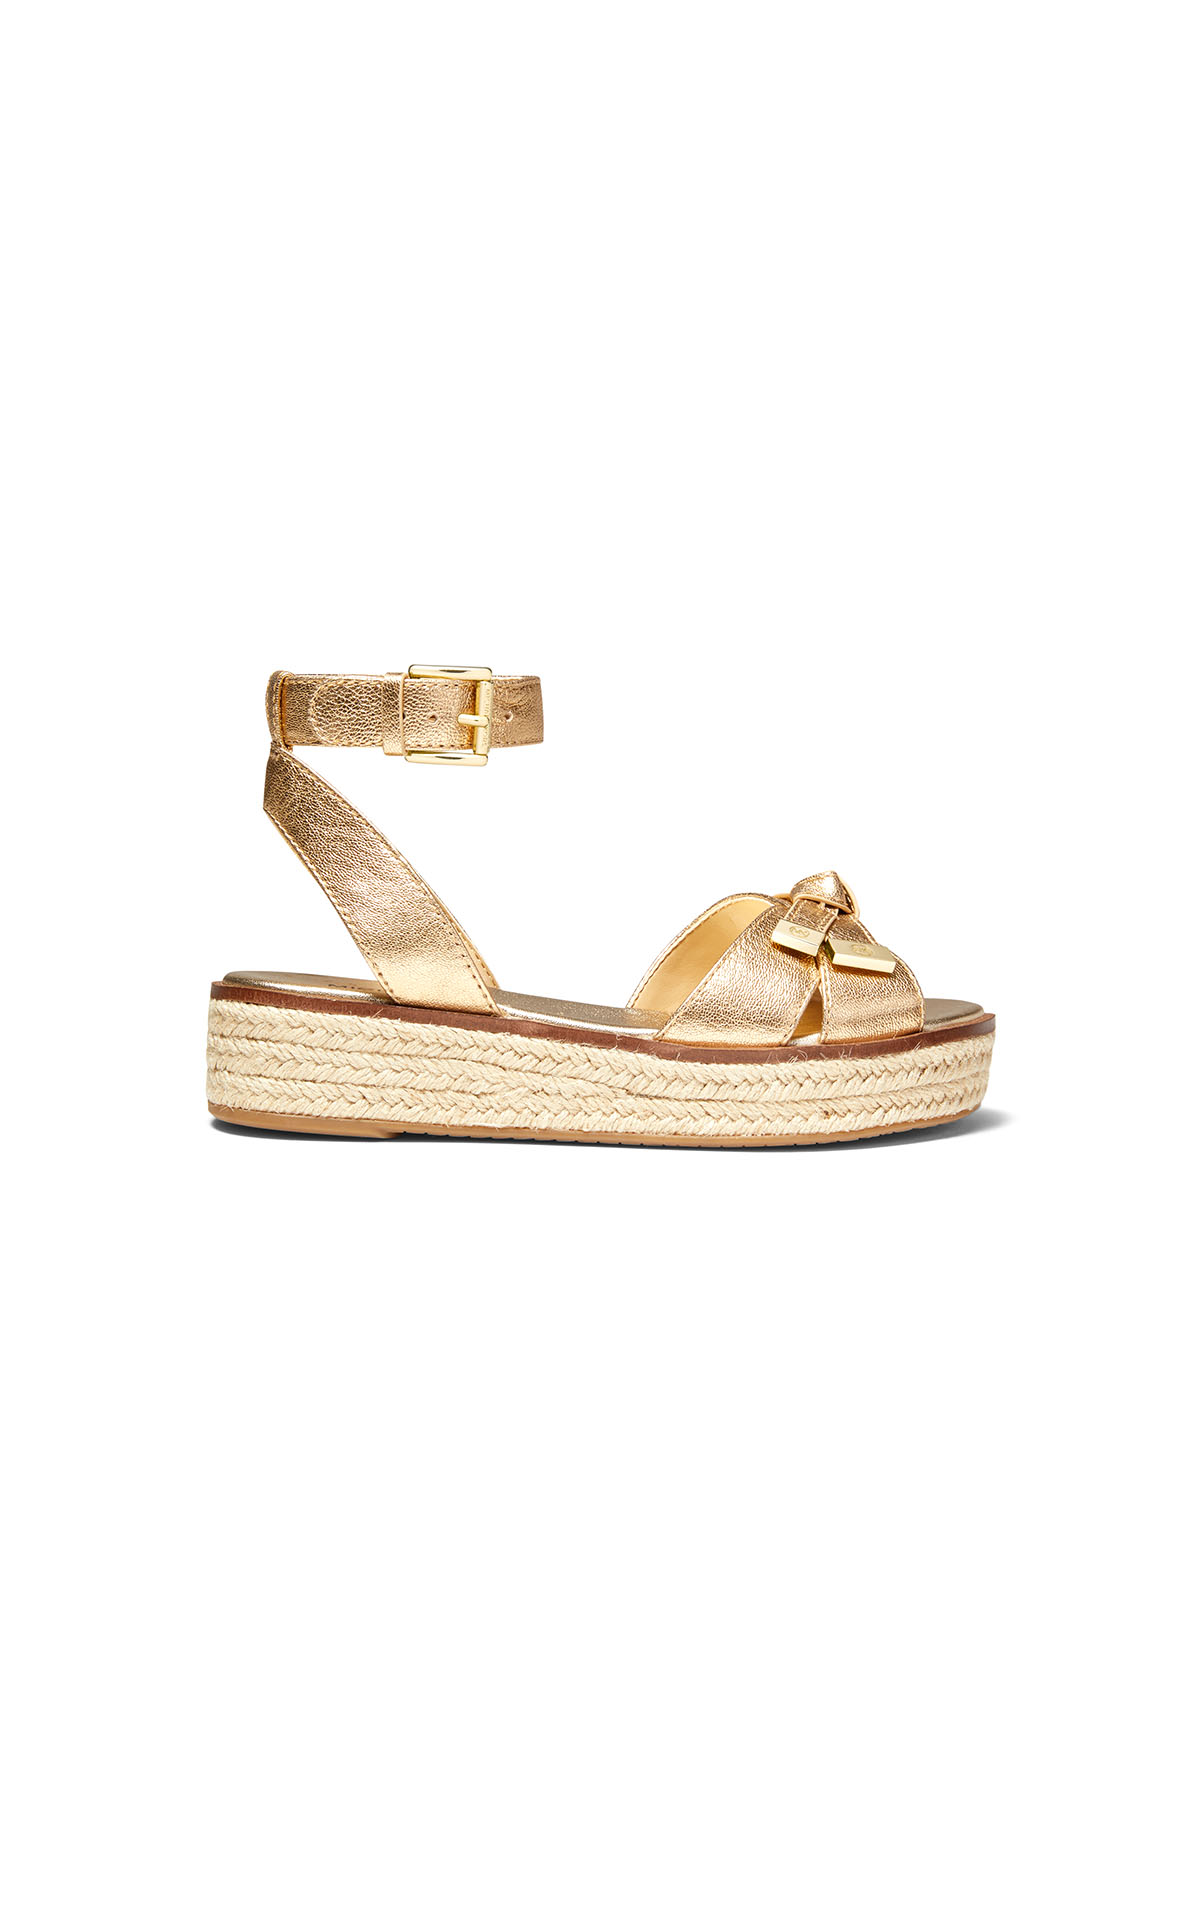 Michael Kors Ripley Sandal at The Bicester Village Shopping Collection